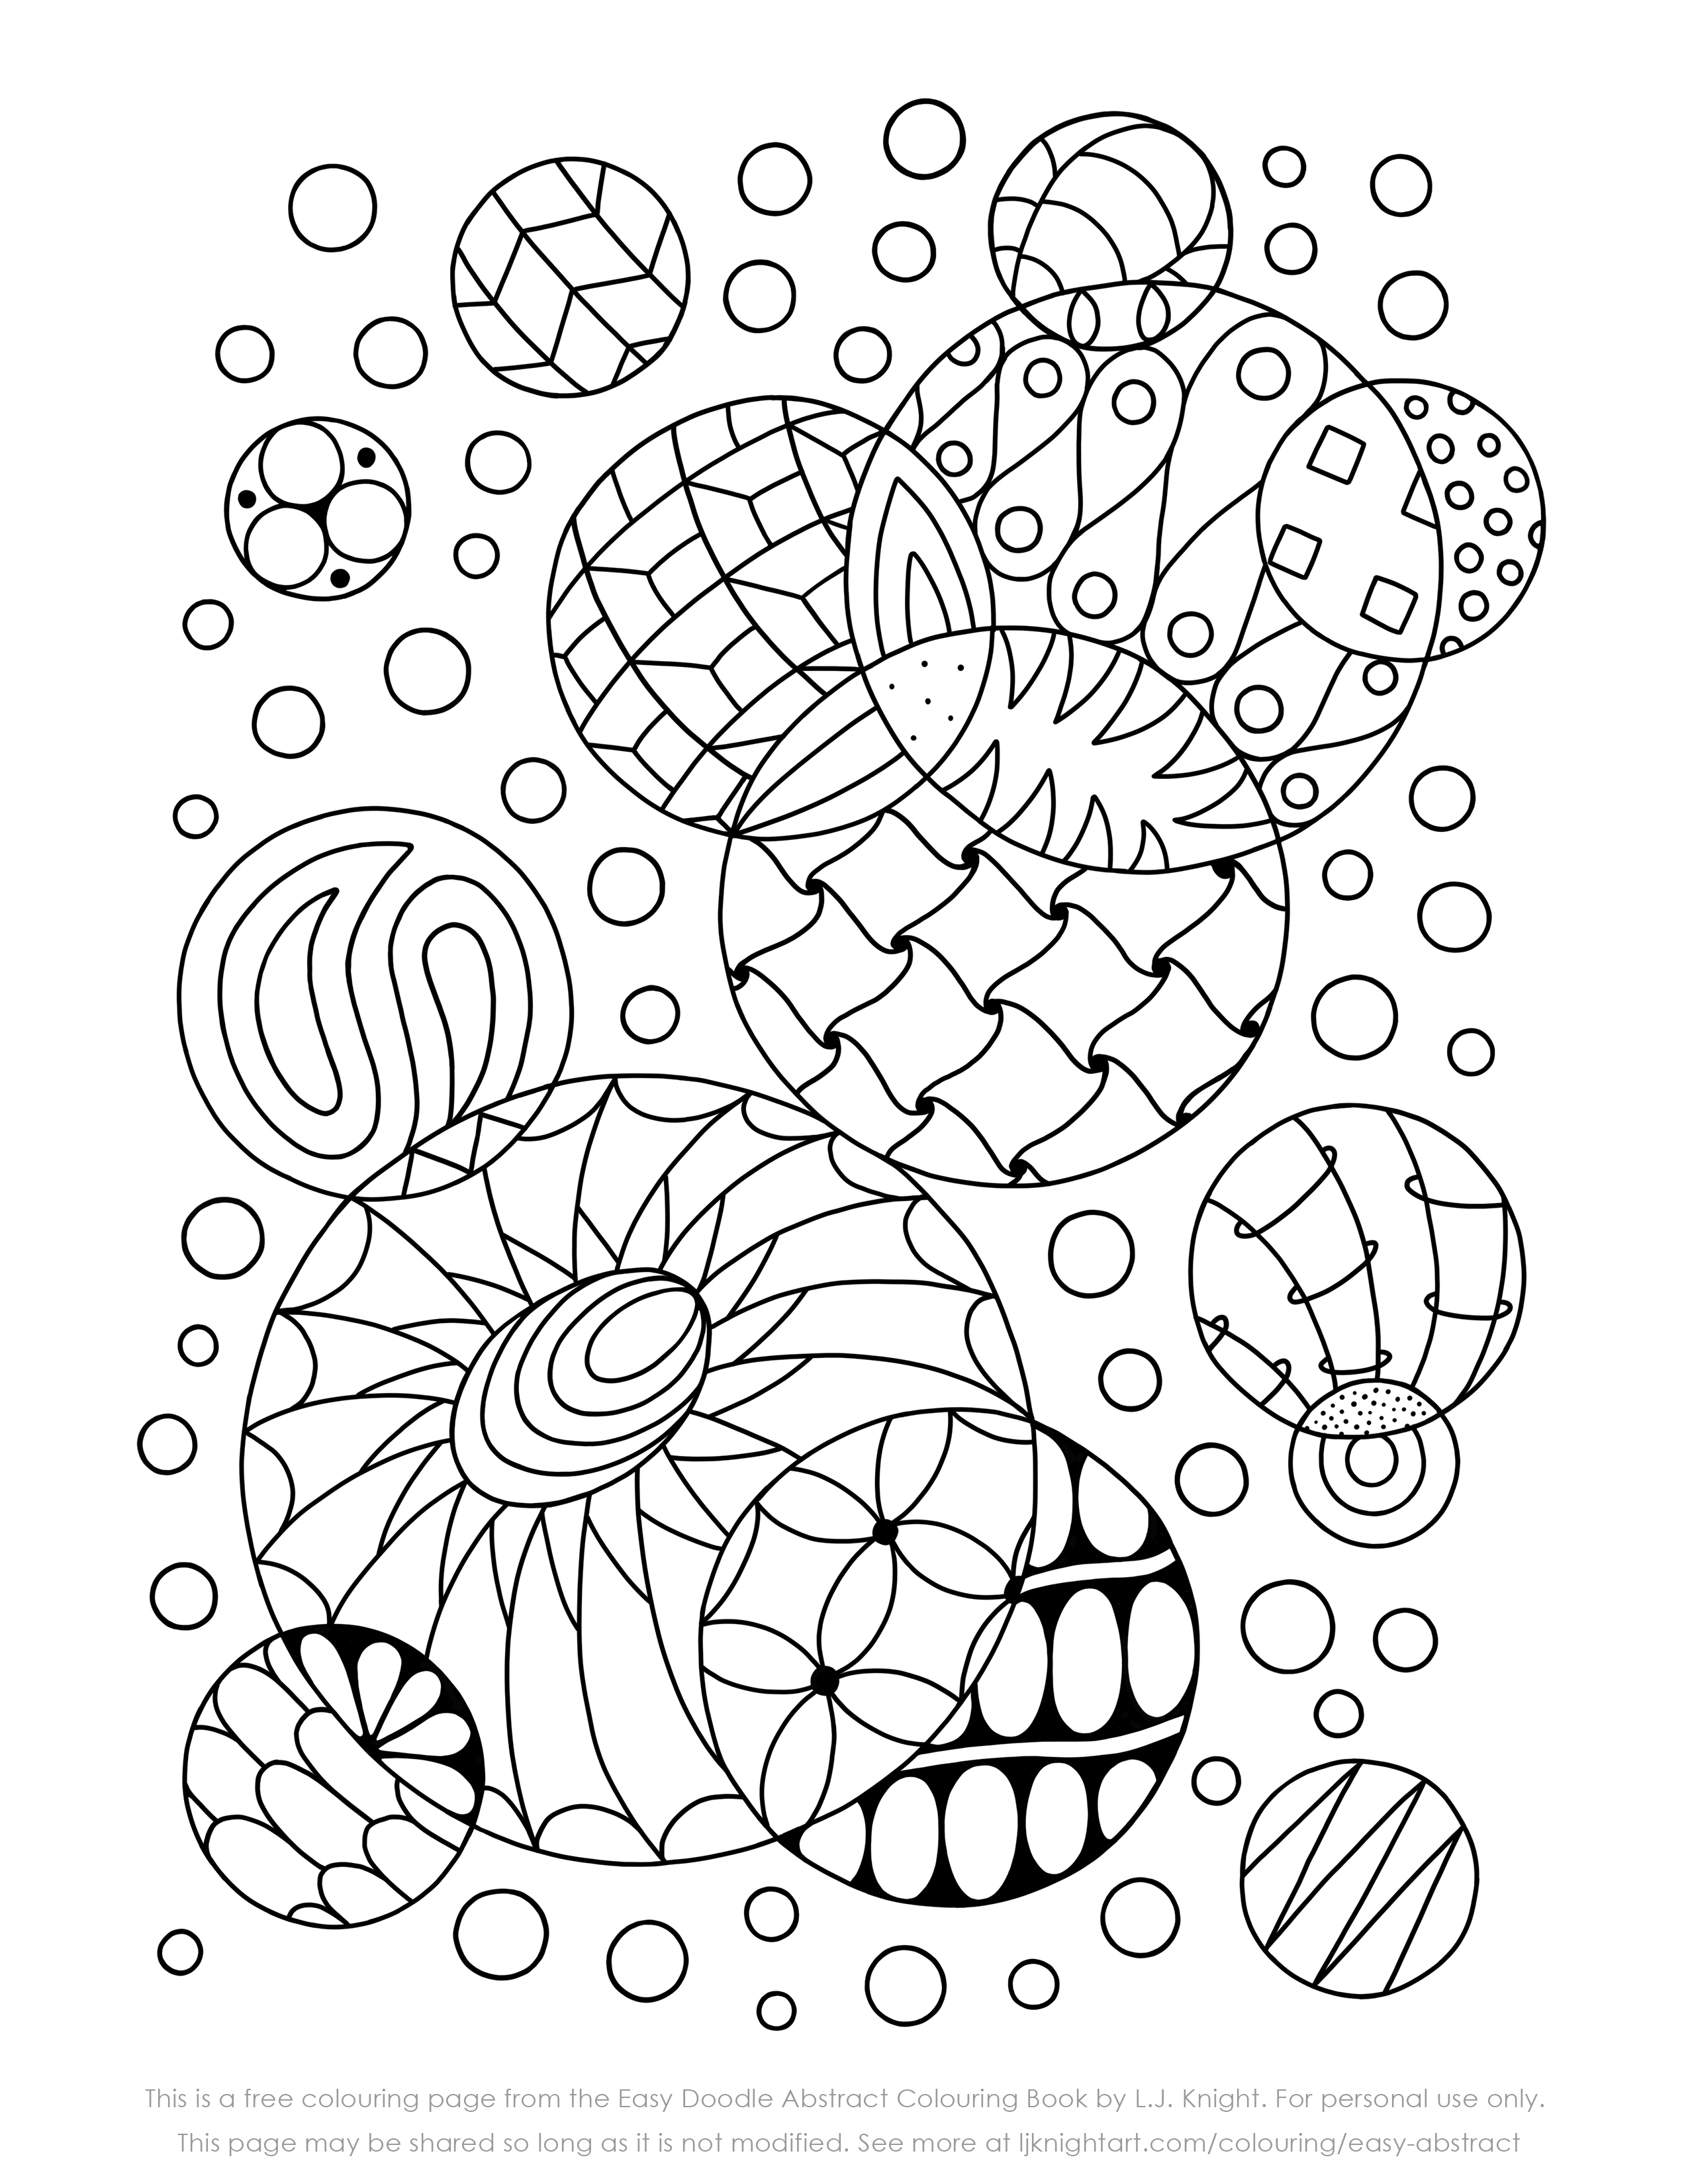 Free Colouring Pages | L.J. Knight